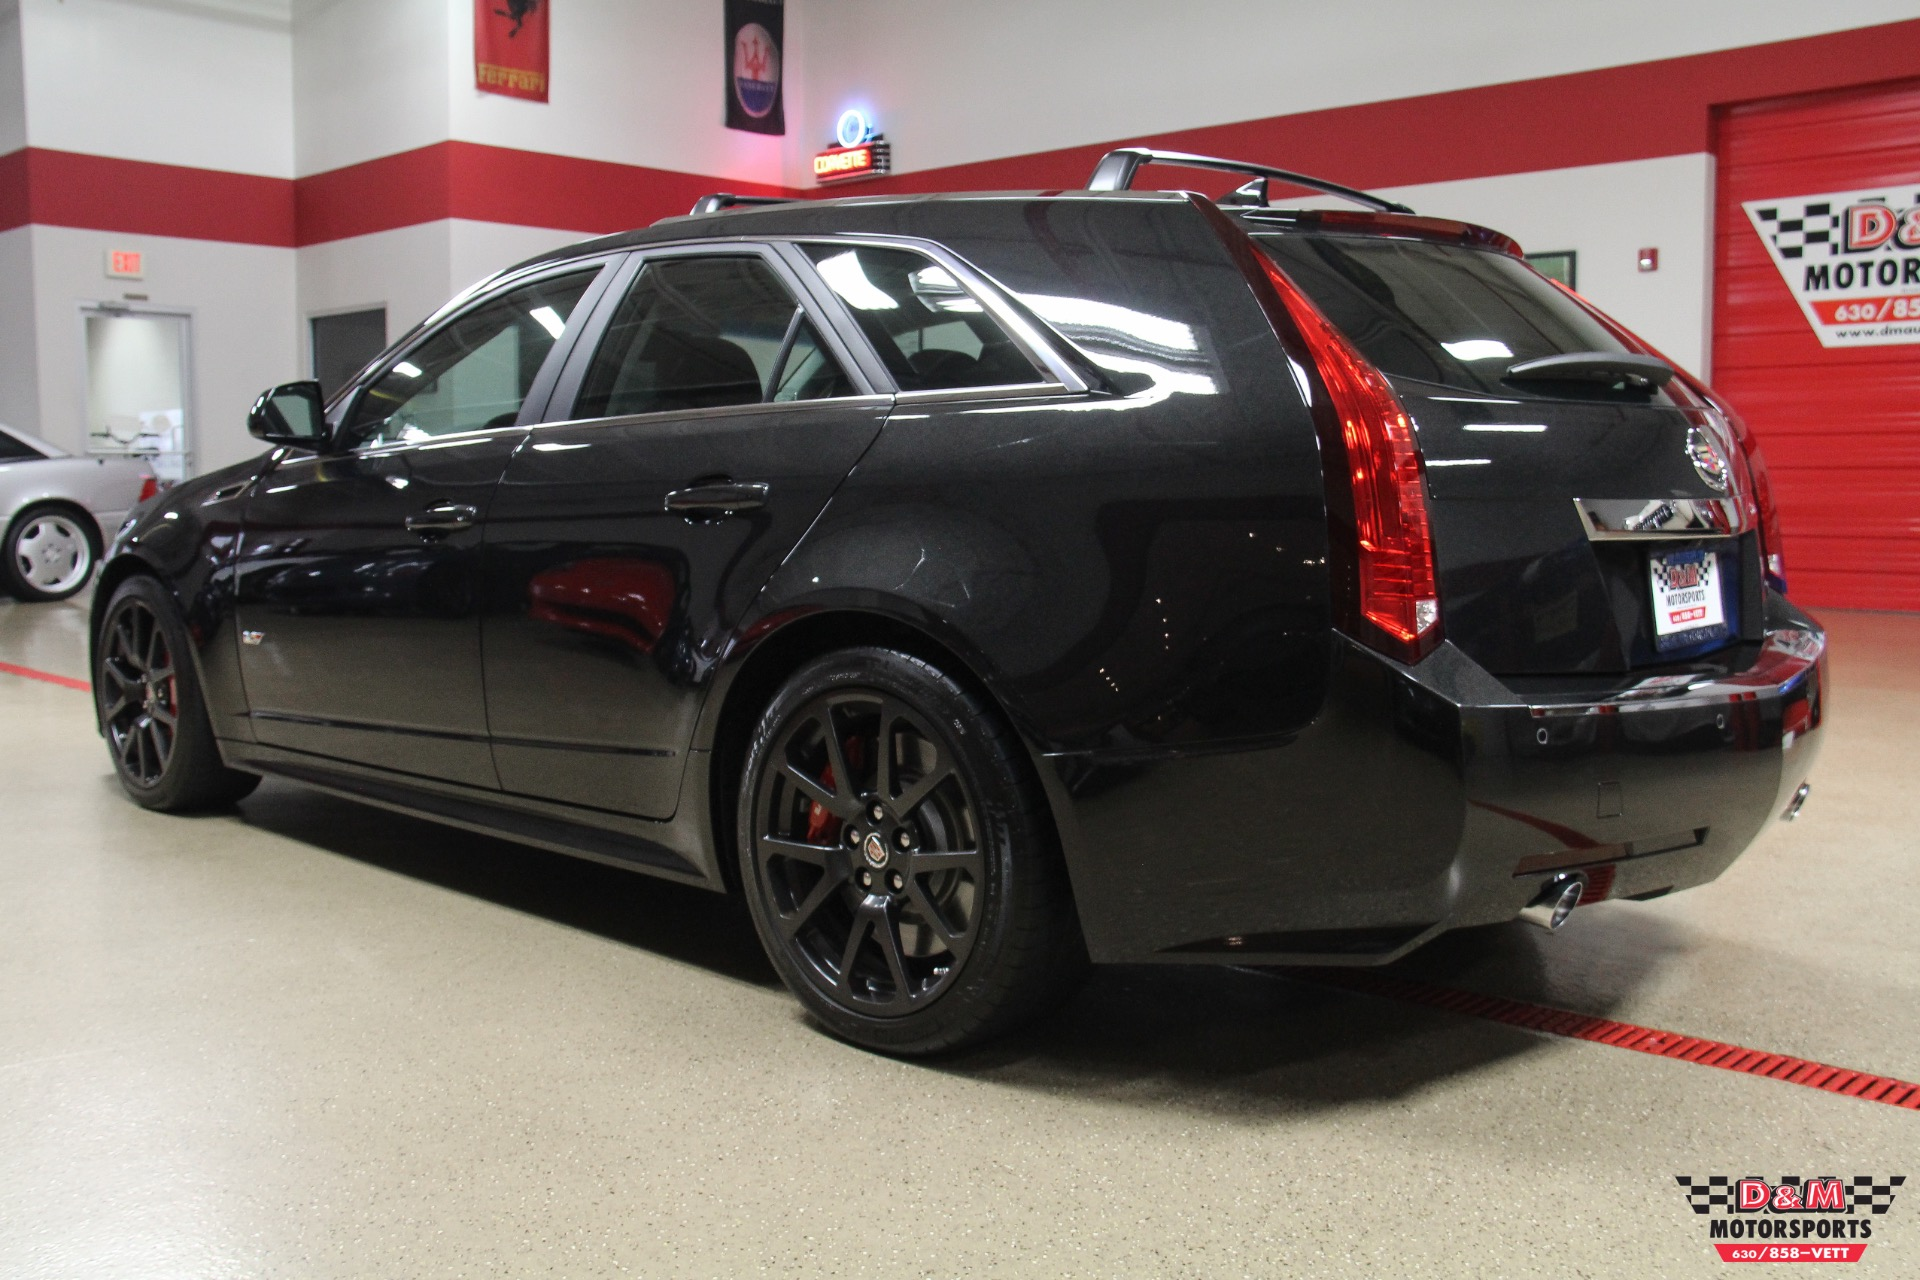 Cadillac Cts V Autotrader >> Cadillac Cts V Wagon for Sale | News of New Car Release